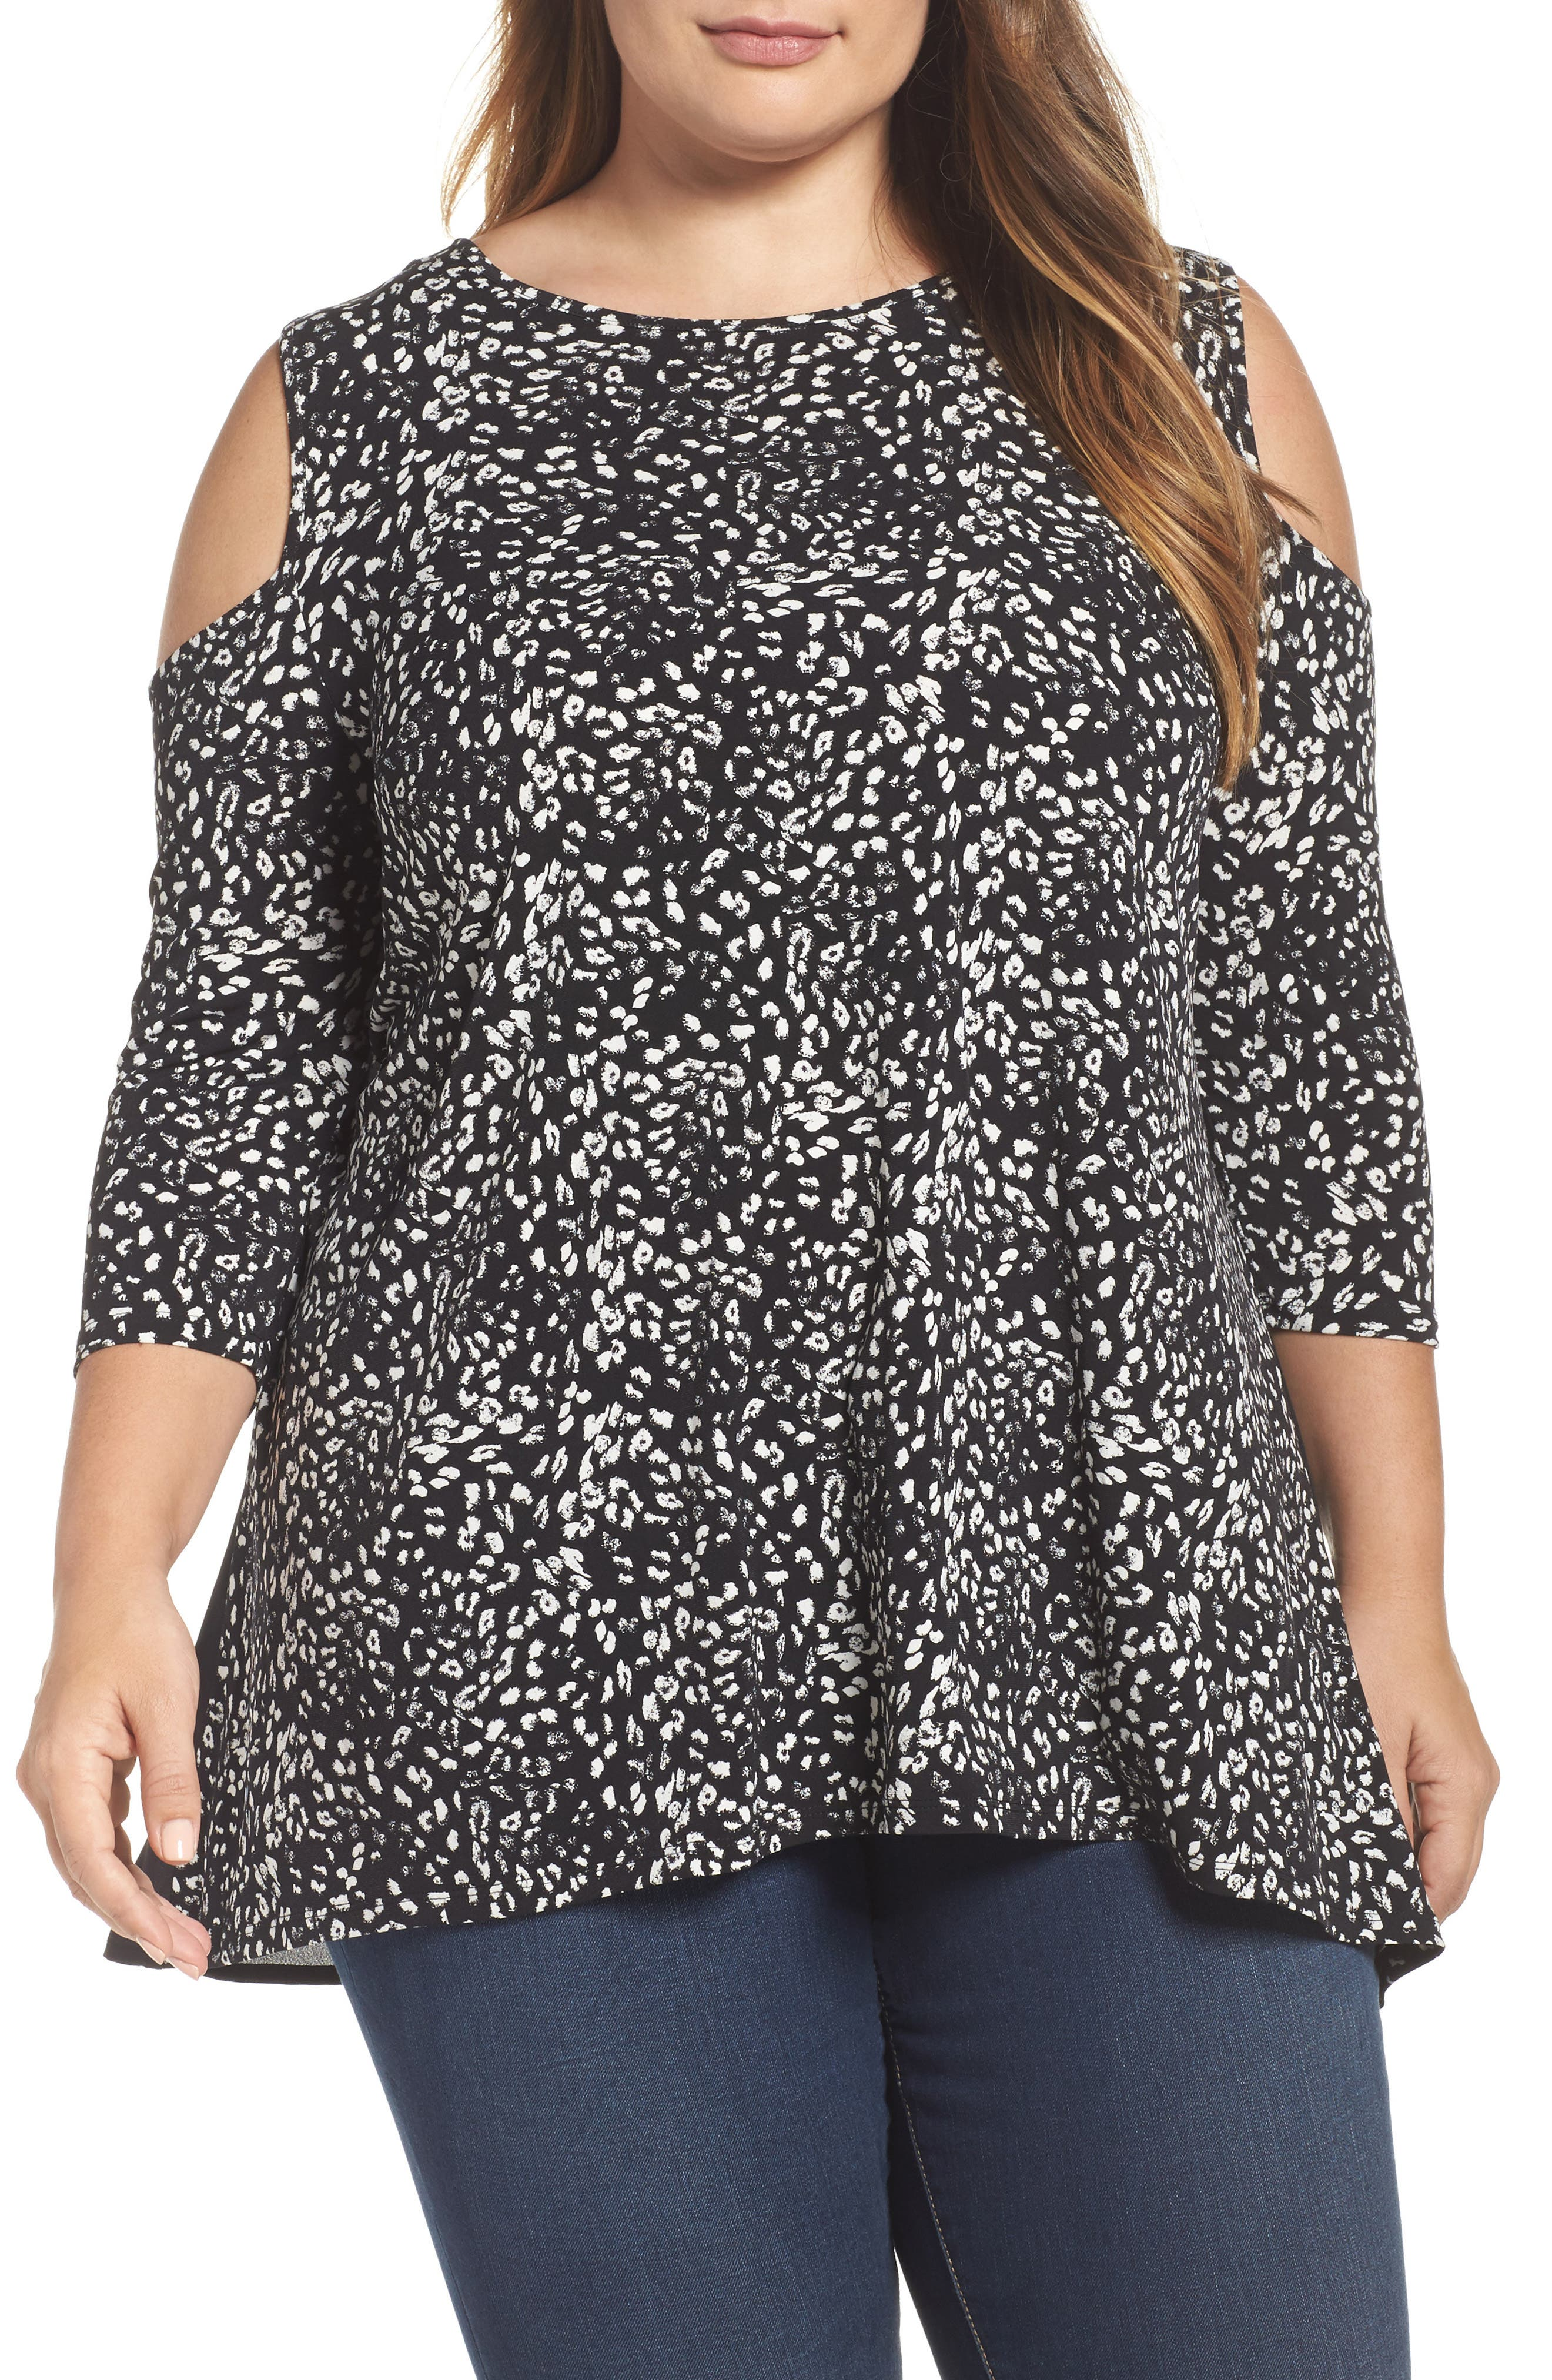 Alternate Image 1 Selected - Vince Camuto Animal Whispers Cold Shoulder Top (Plus Size)